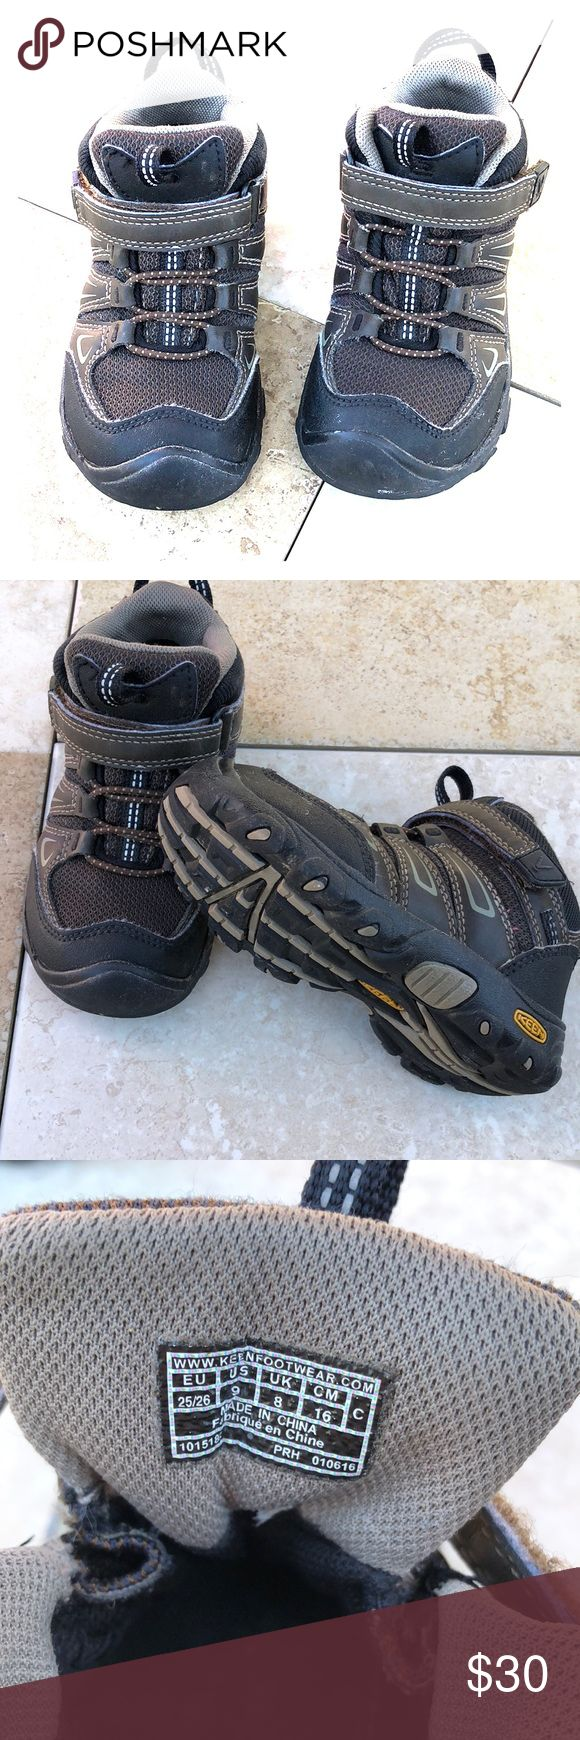 Toddler/little boy Keen hiking boots Great hiking boots if you like to take your kids hiking. Also great for in between seasons to keep your little ones feet dry. Keen Shoes Boots